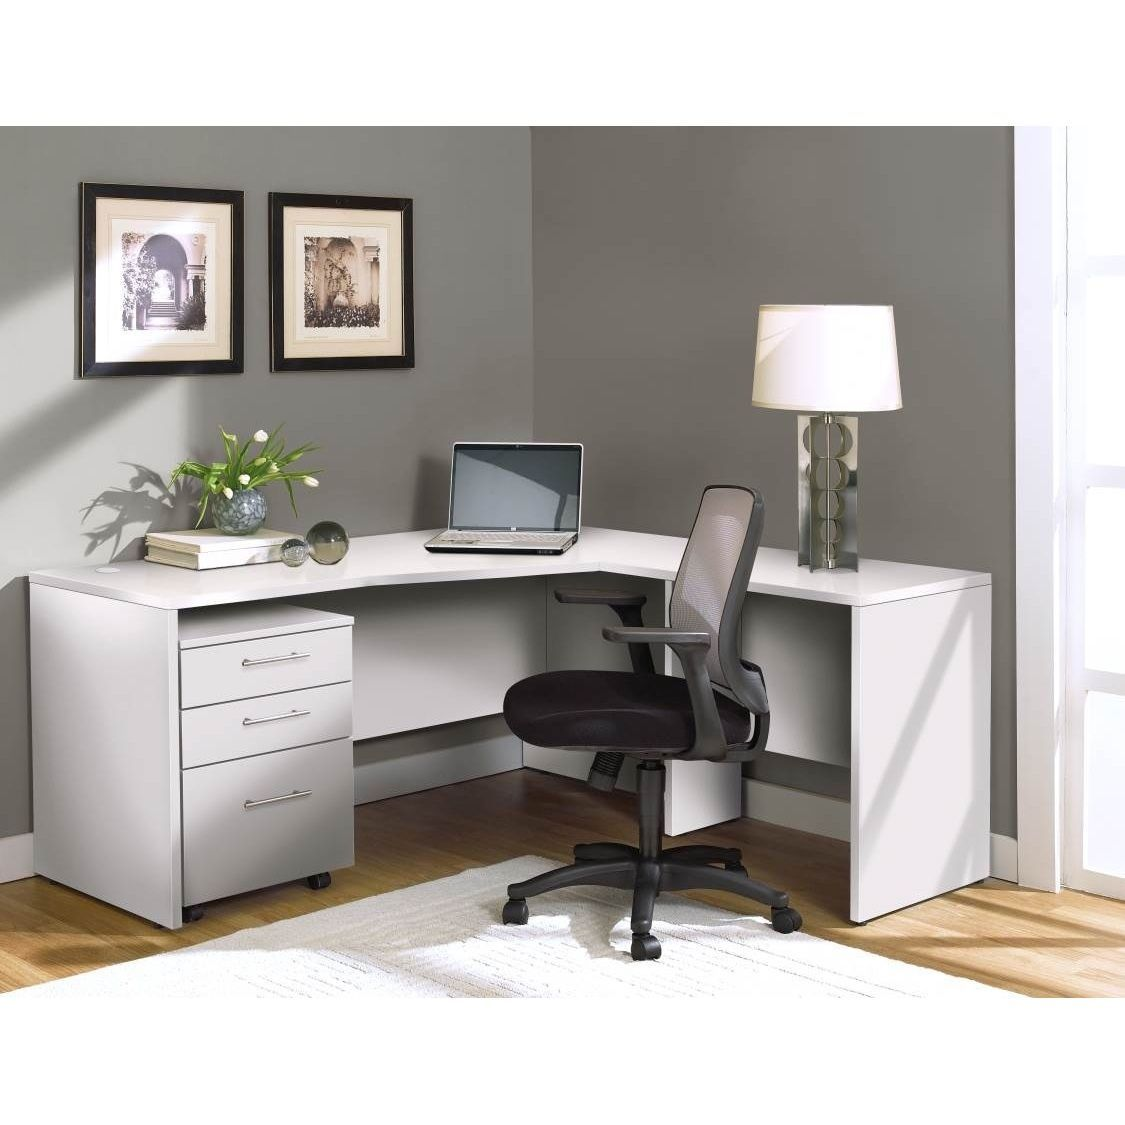 Overstock Com Online Shopping Bedding Furniture Electronics Jewelry Clothing More L Shaped Corner Desk White L Shaped Desk L Shaped Desk